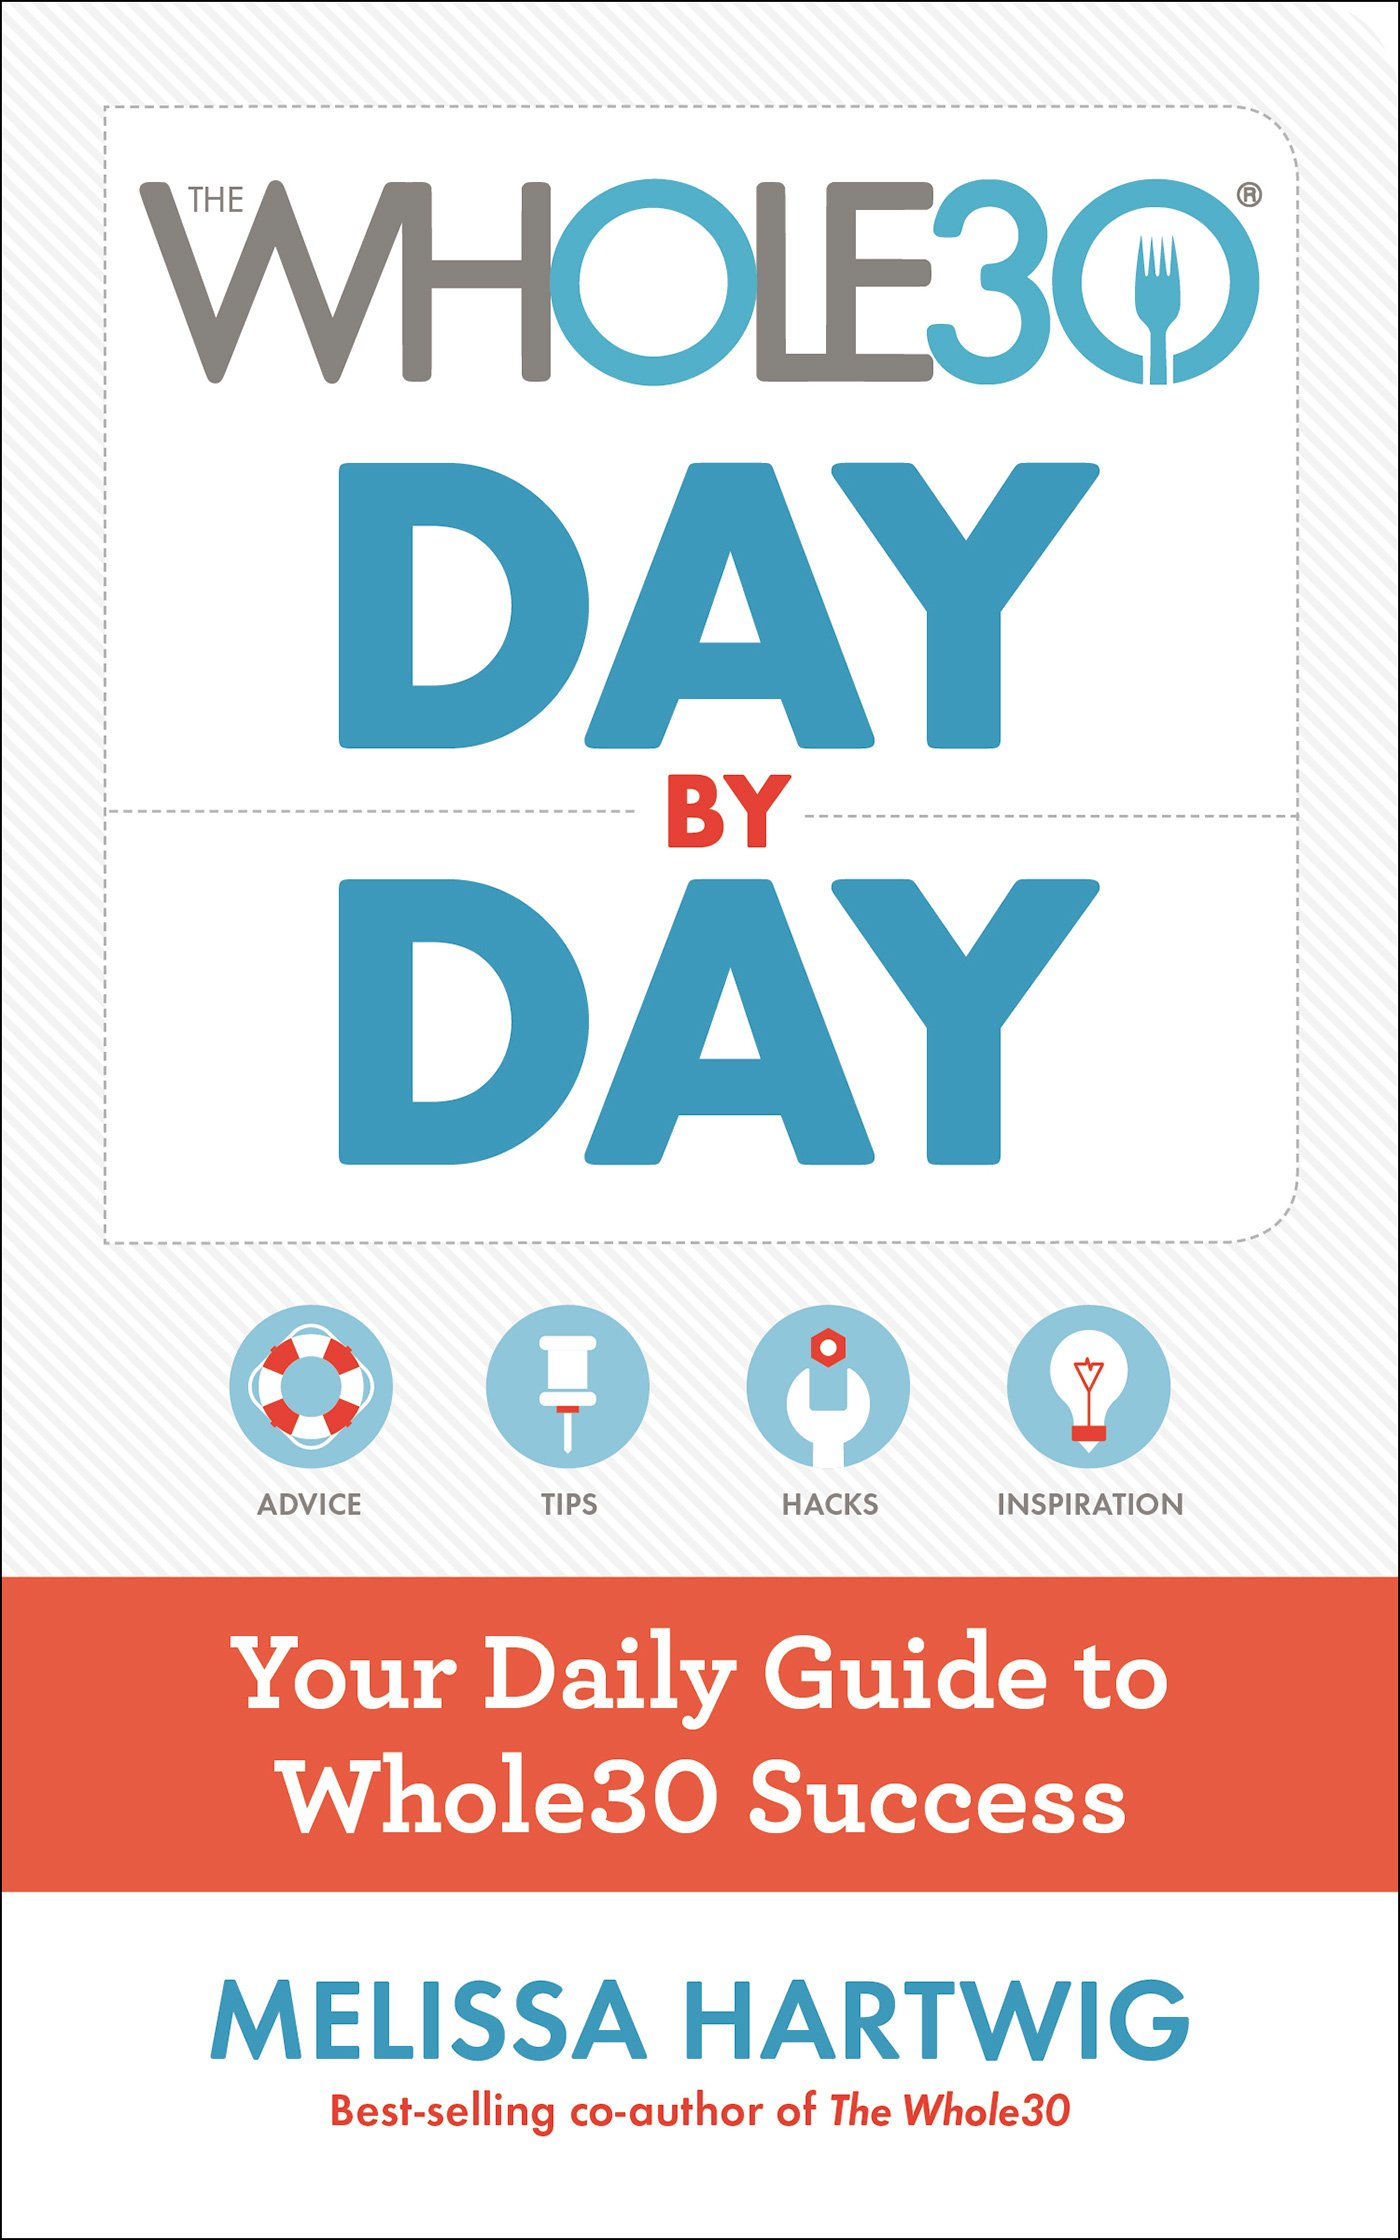 The Whole30 Day by Day: Your Daily Guide to Whole30 Success: Melissa  Hartwig: 9781328839237: Amazon.com: Books